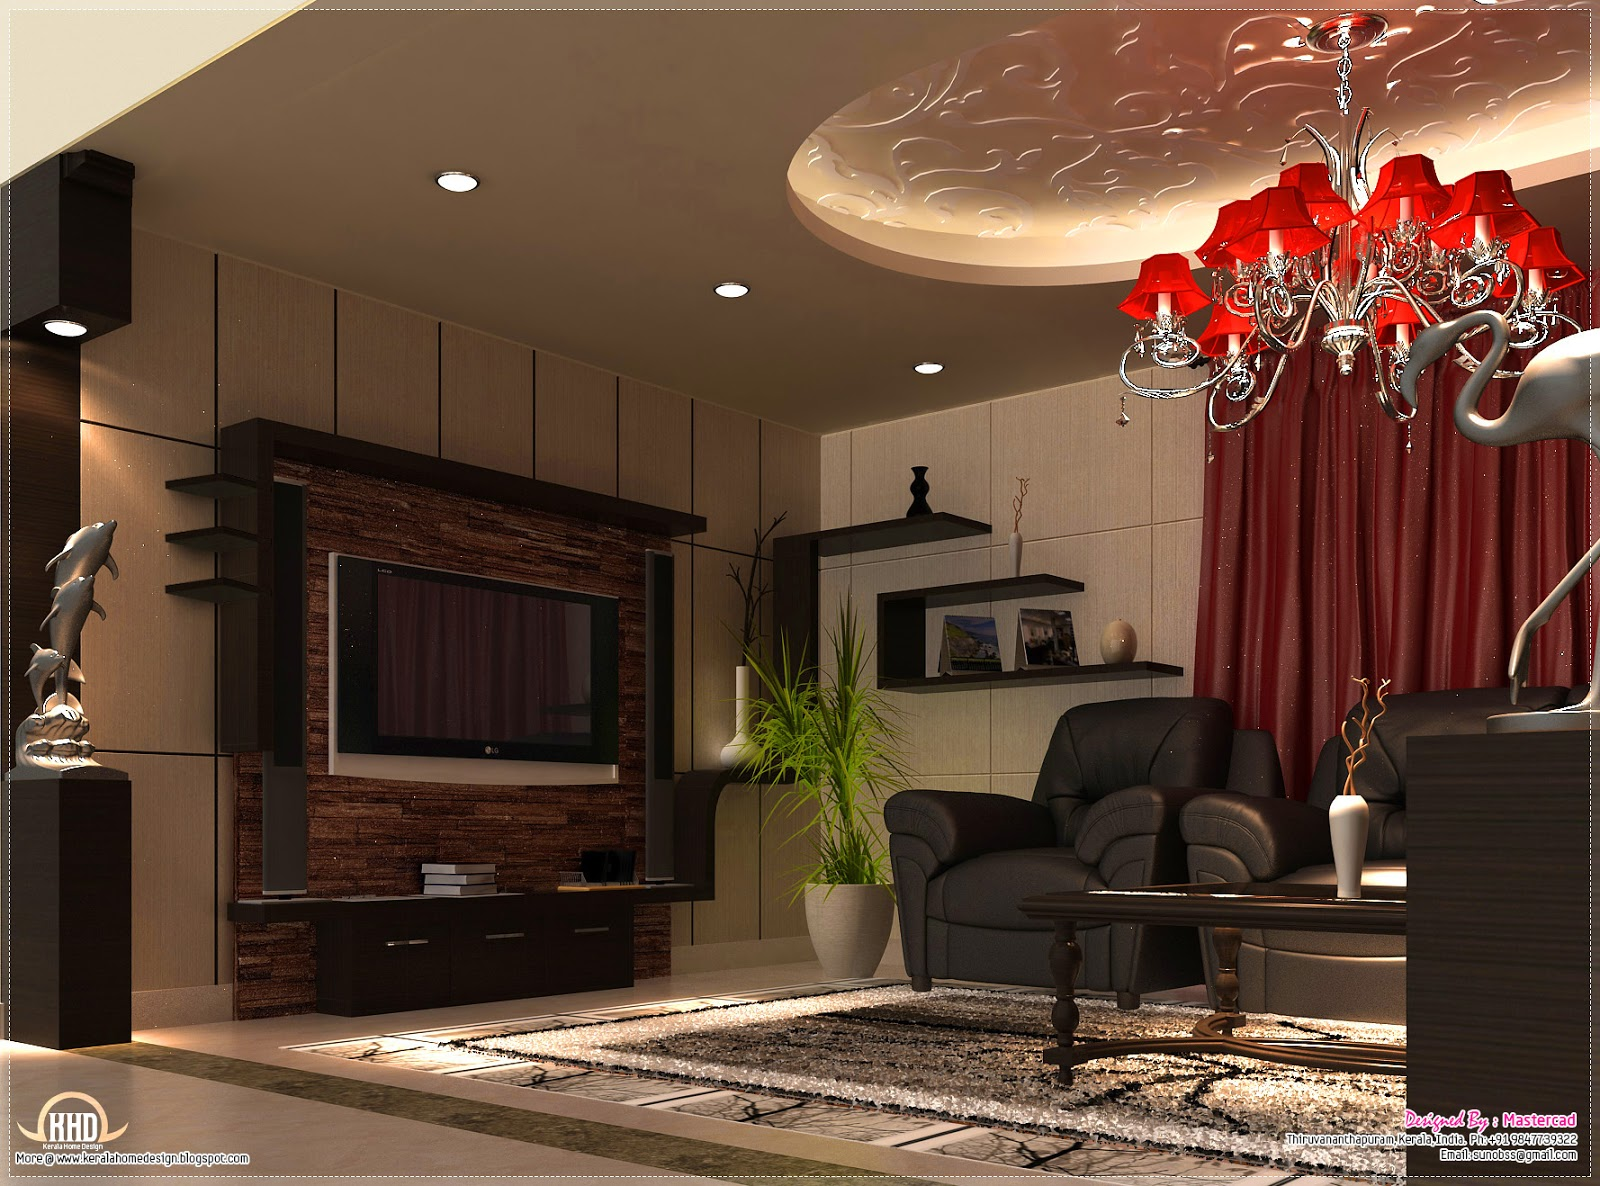 Interior design ideas kerala home design and floor plans for Interior designs houses pictures